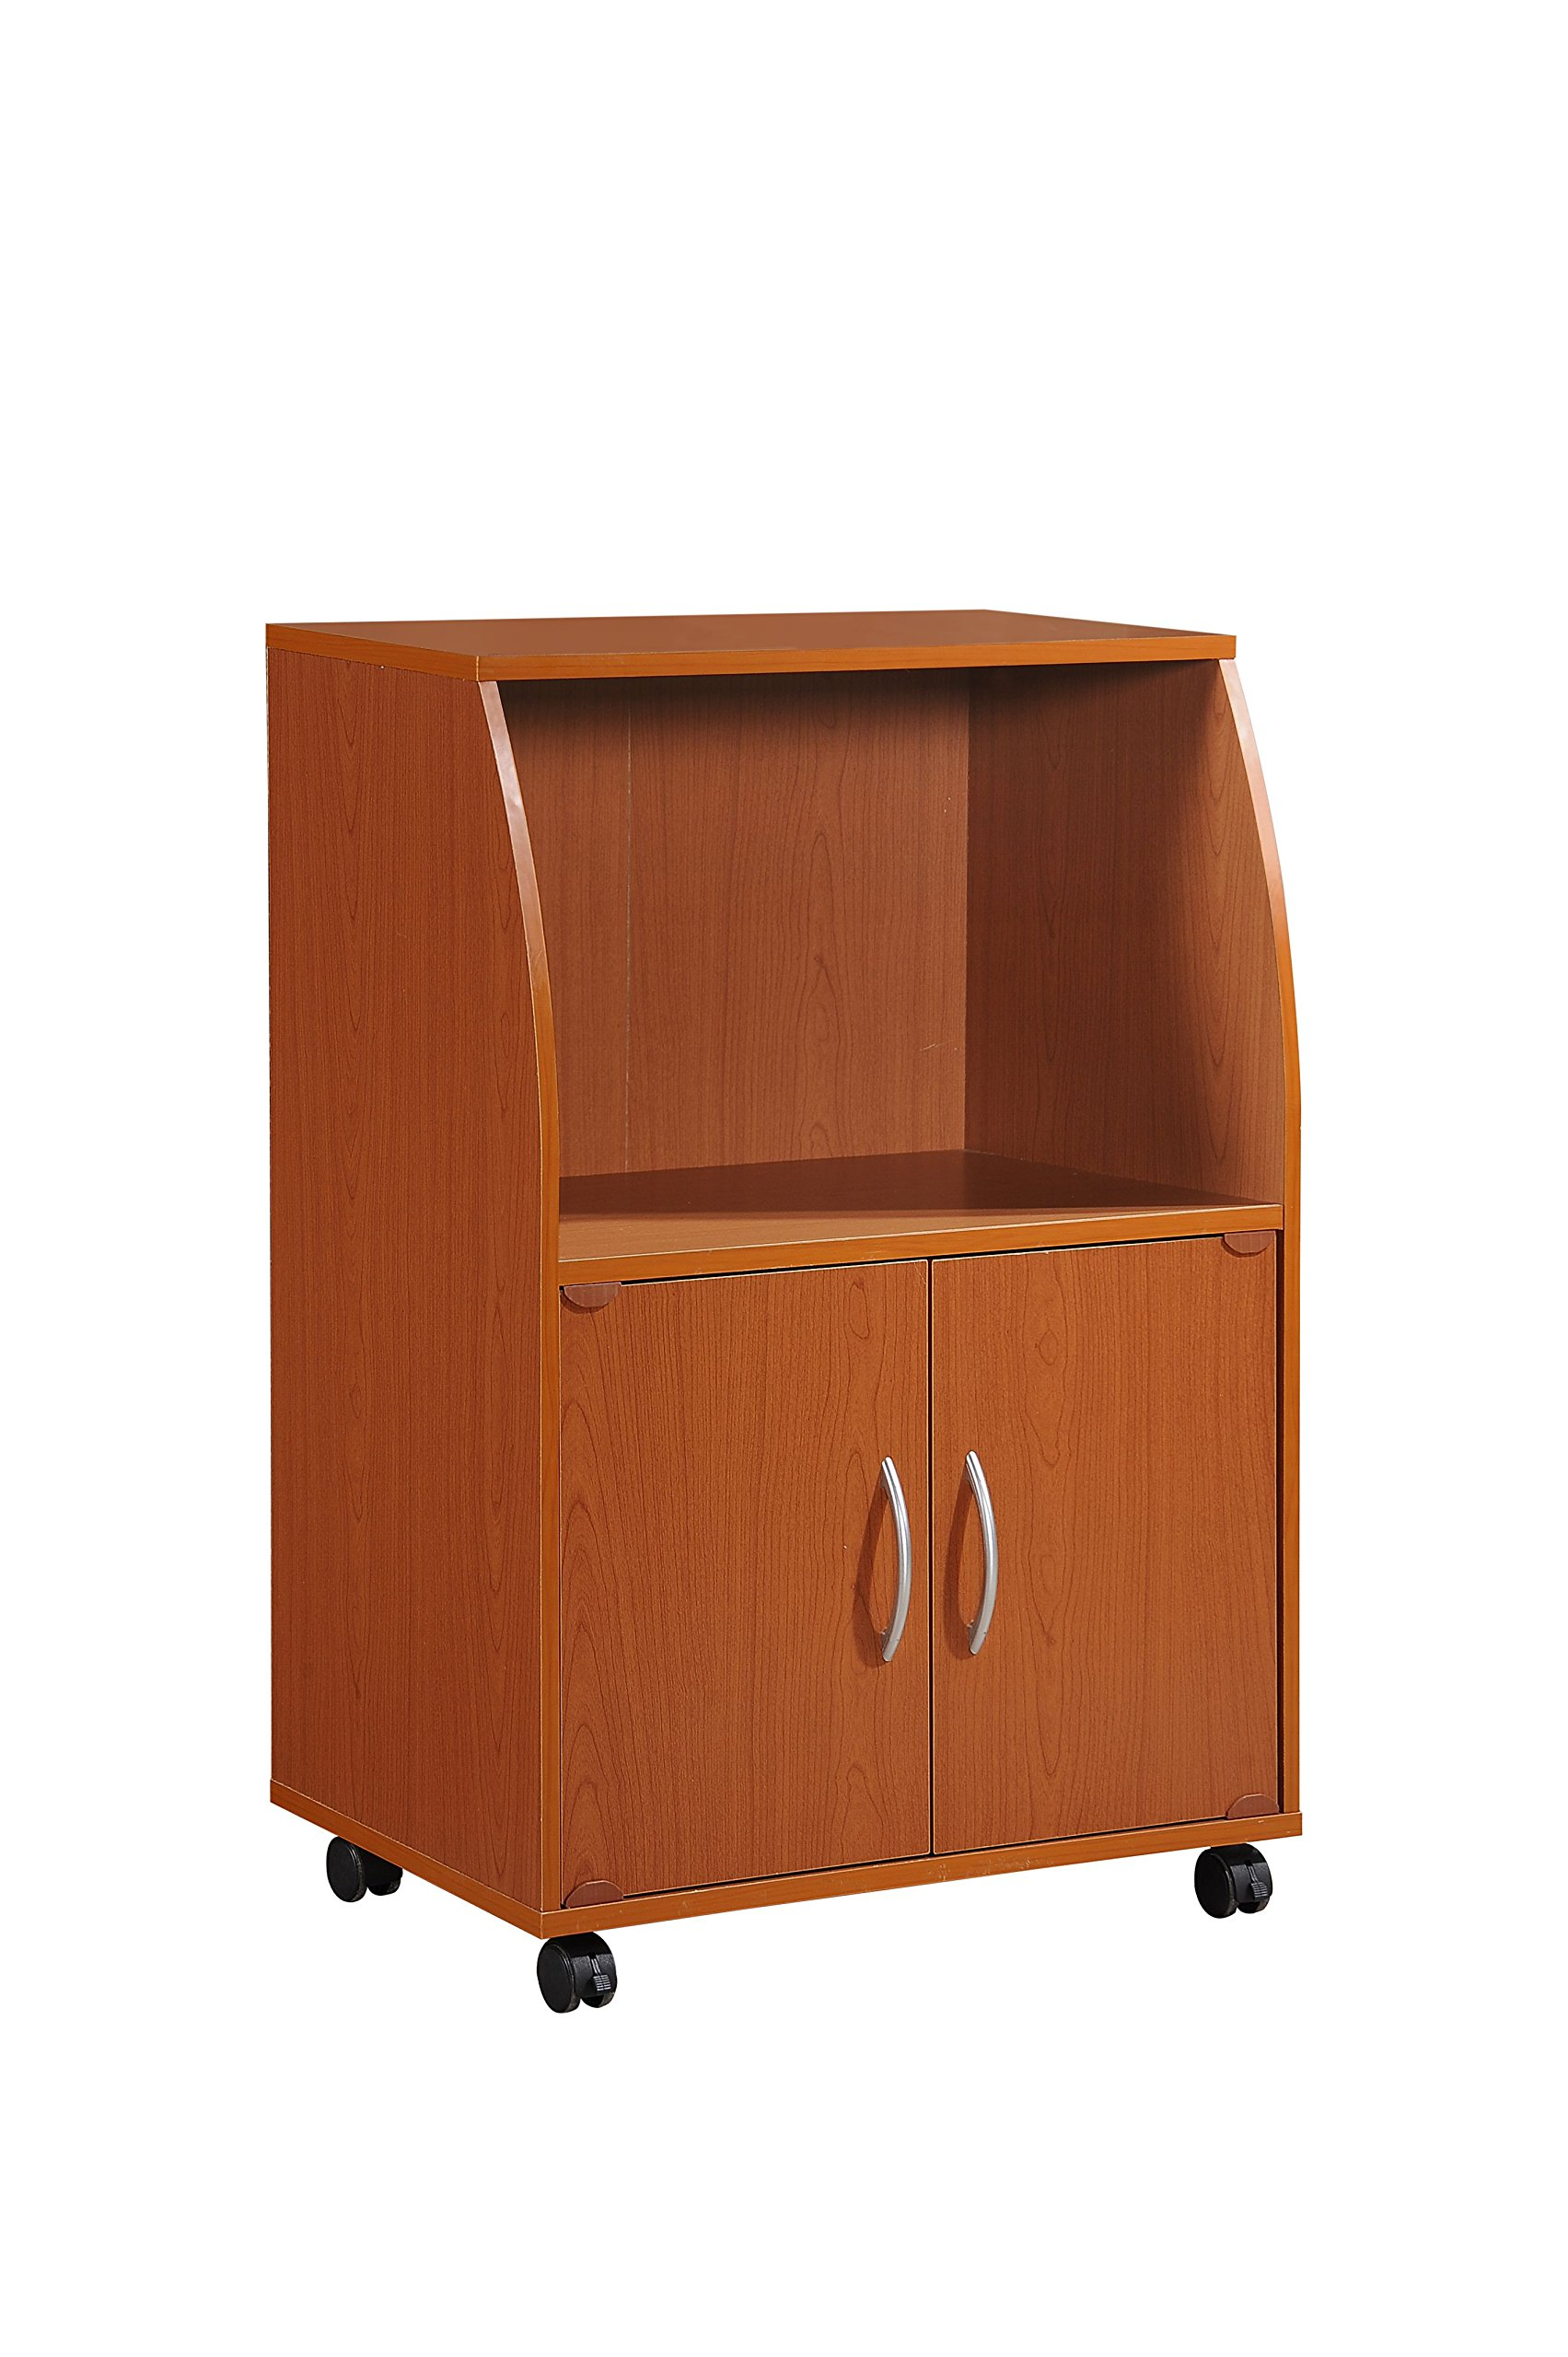 Hodedah Mini Microwave Cart with Two Doors and Shelf for Storage, Cherry